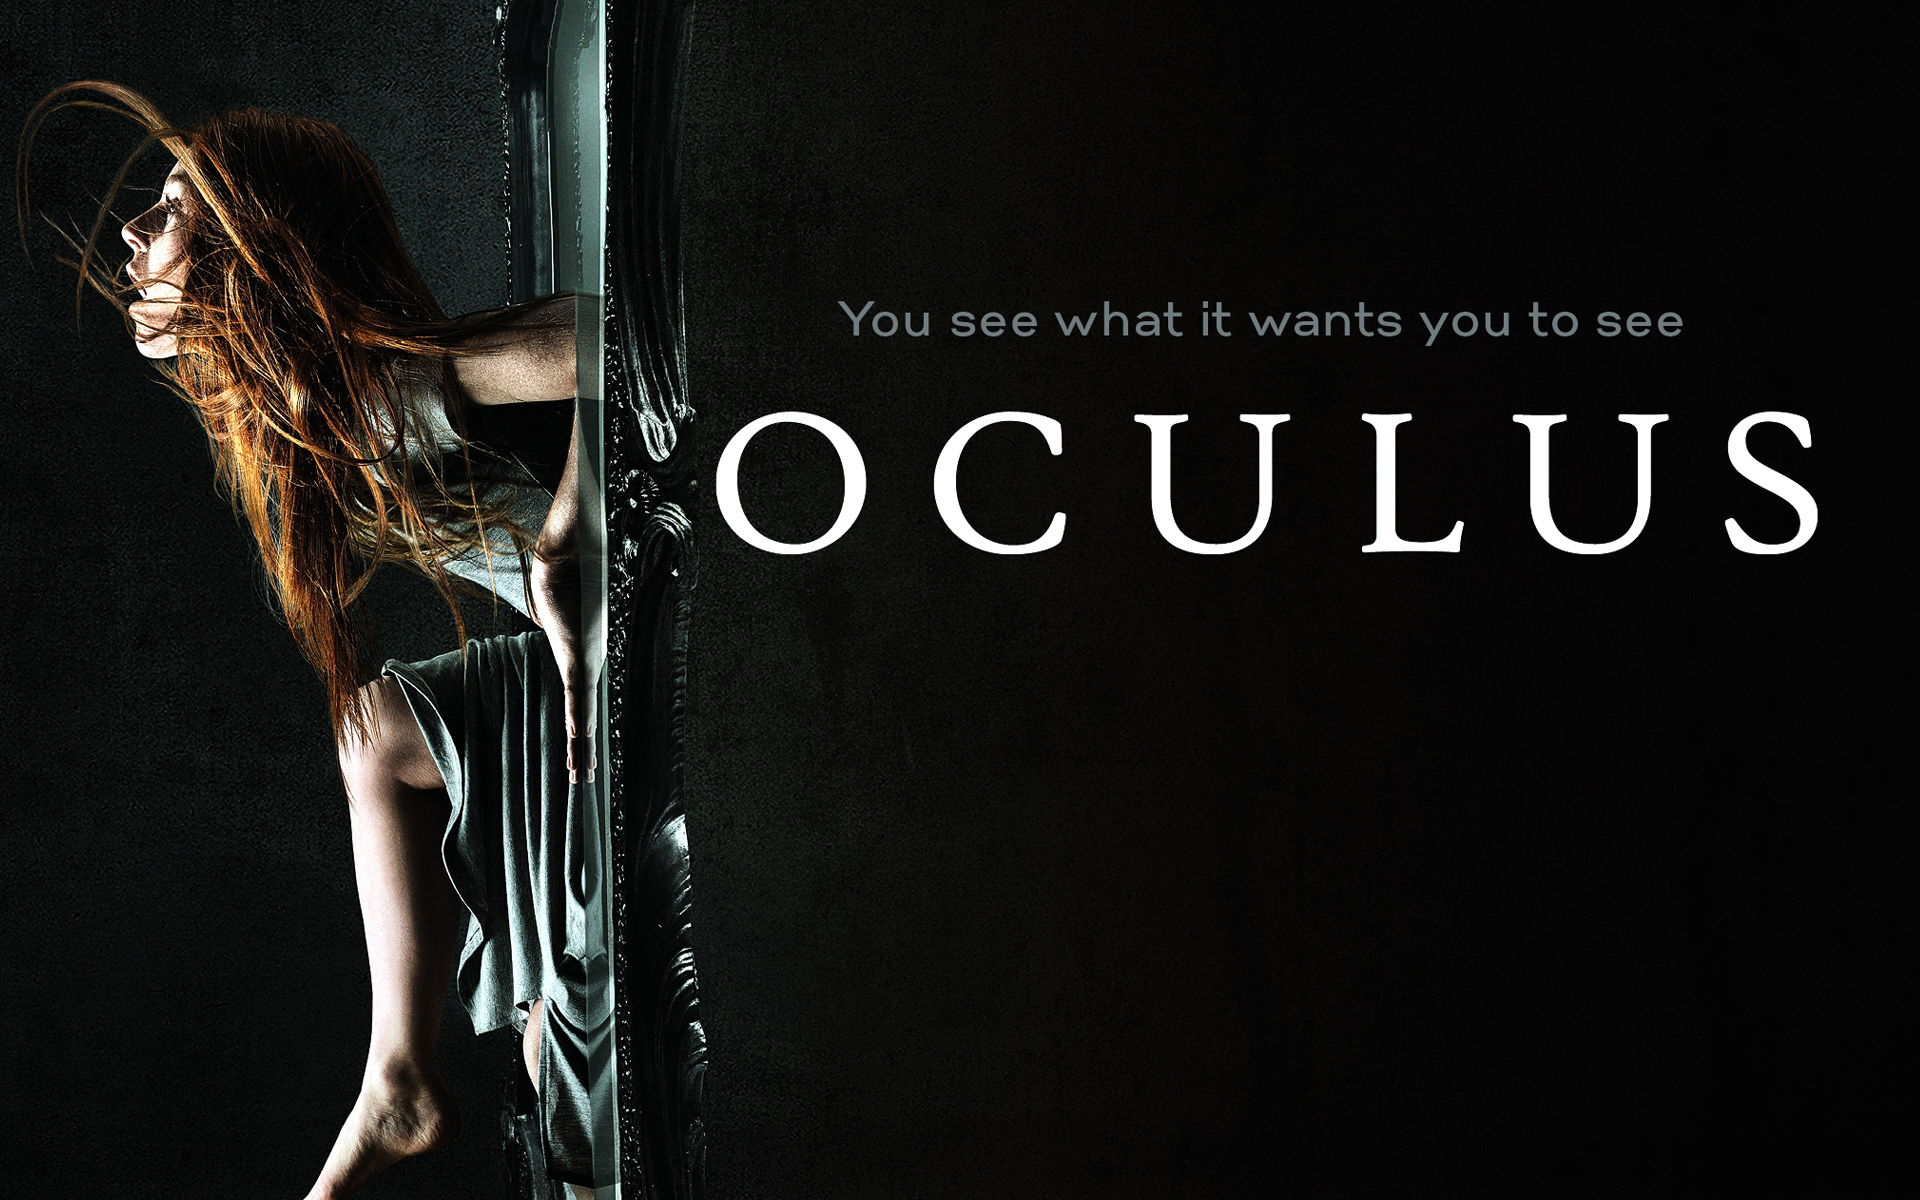 Oculus 2014 Horror Movie Wallpapers HD Wallpapers 1920x1200